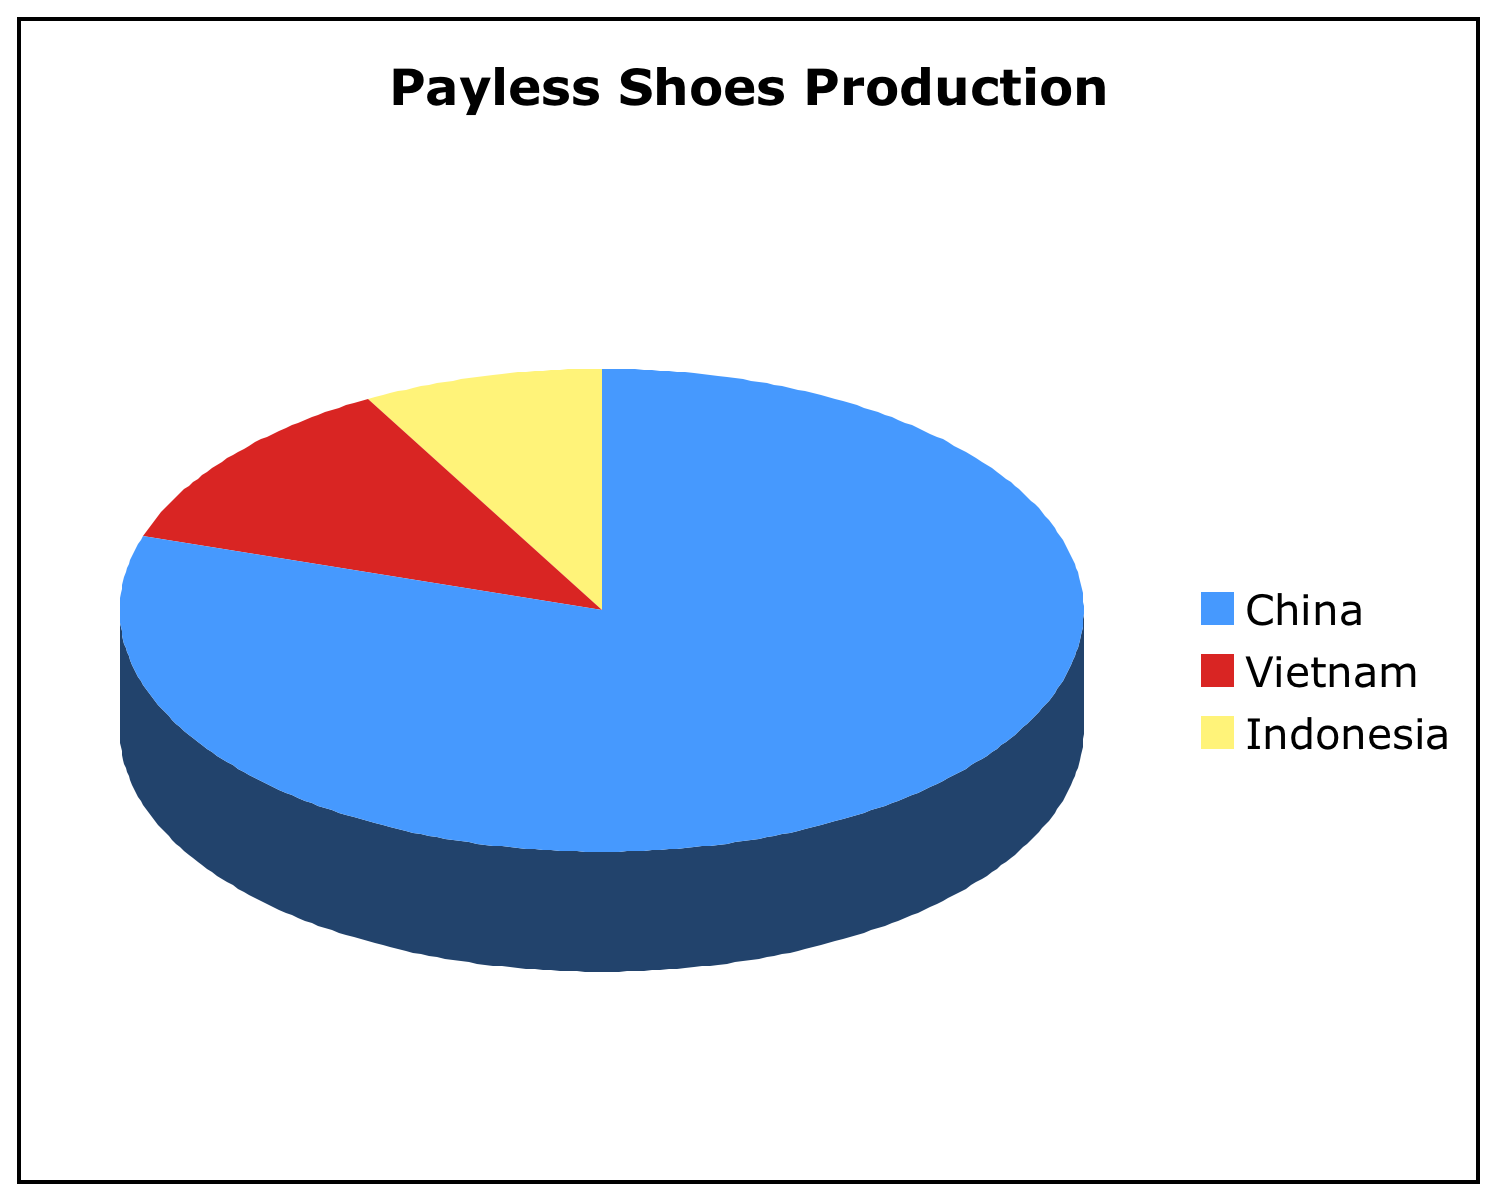 Excel math 2010 looking at these two pie charts you can readily see how the nike company has balanced their production across three countries while payless is heavily nvjuhfo Choice Image